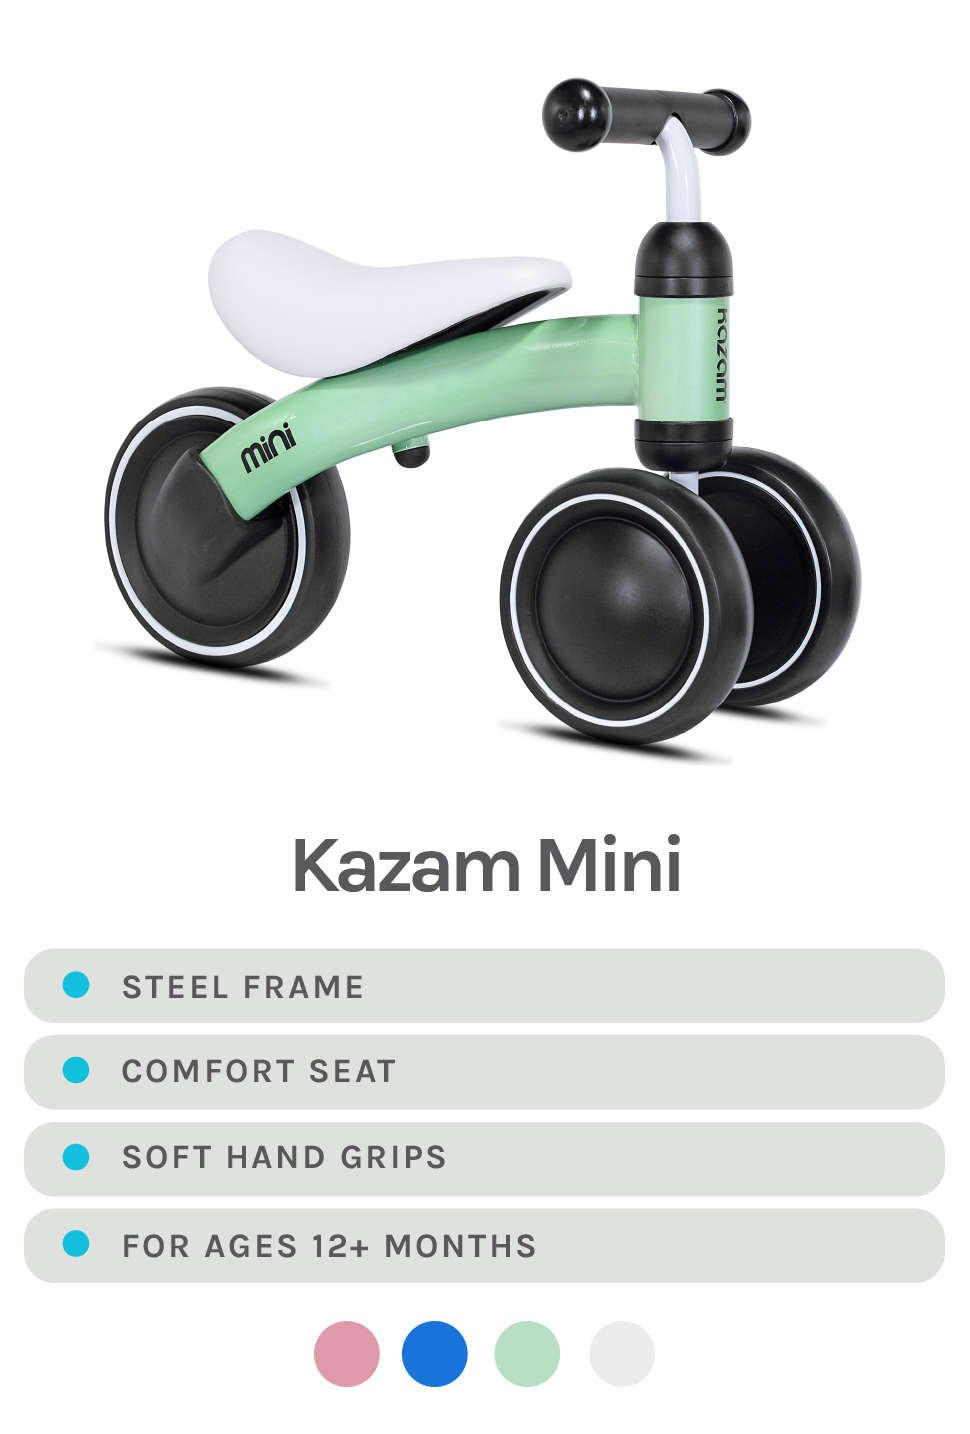 Mint Green Kazam Mini Featured - Specs - Steel Frame, Comfort Seat, Soft Hand Grips, and For Ages 12+ Months - Available Colors in Pink, Blue, Mint Green, and White